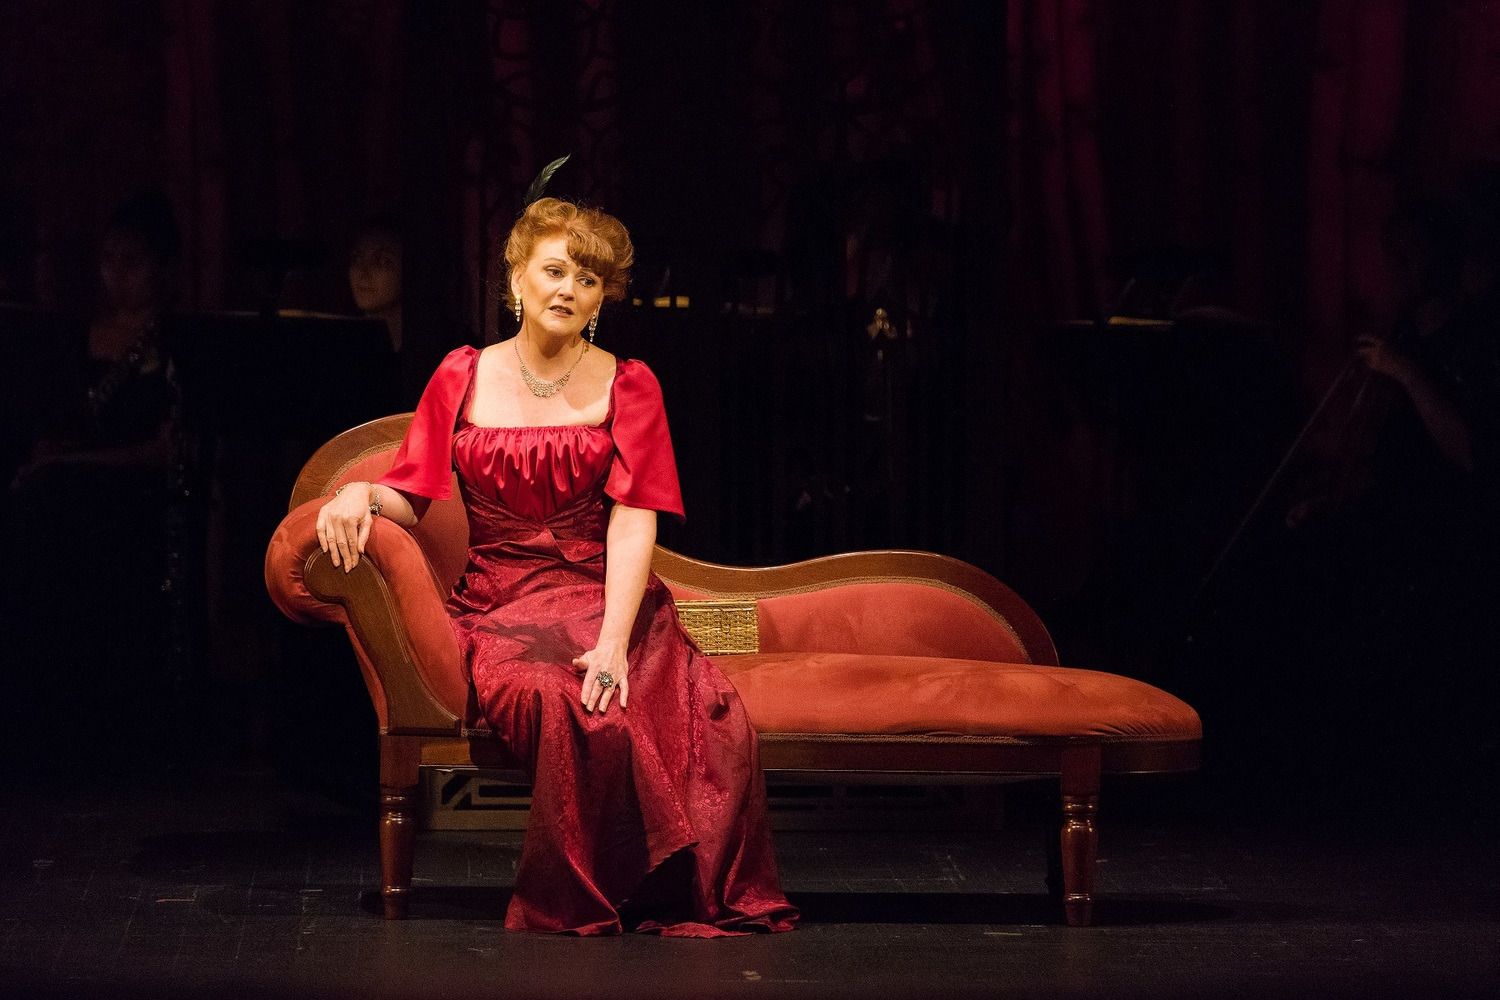 BWW Review: A LITTLE NIGHT MUSIC at ARTS Theatre